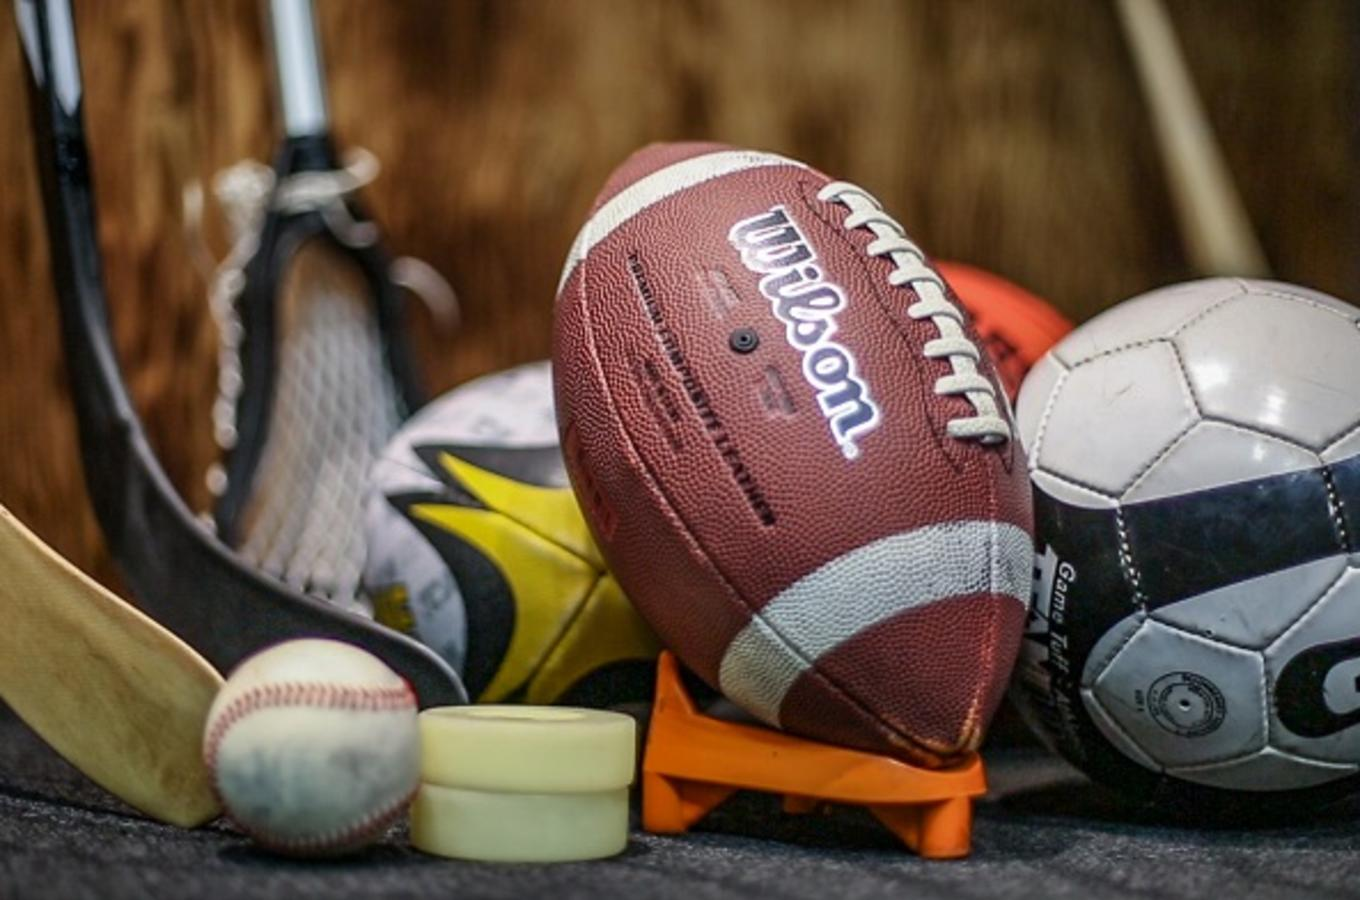 13 Different Sports